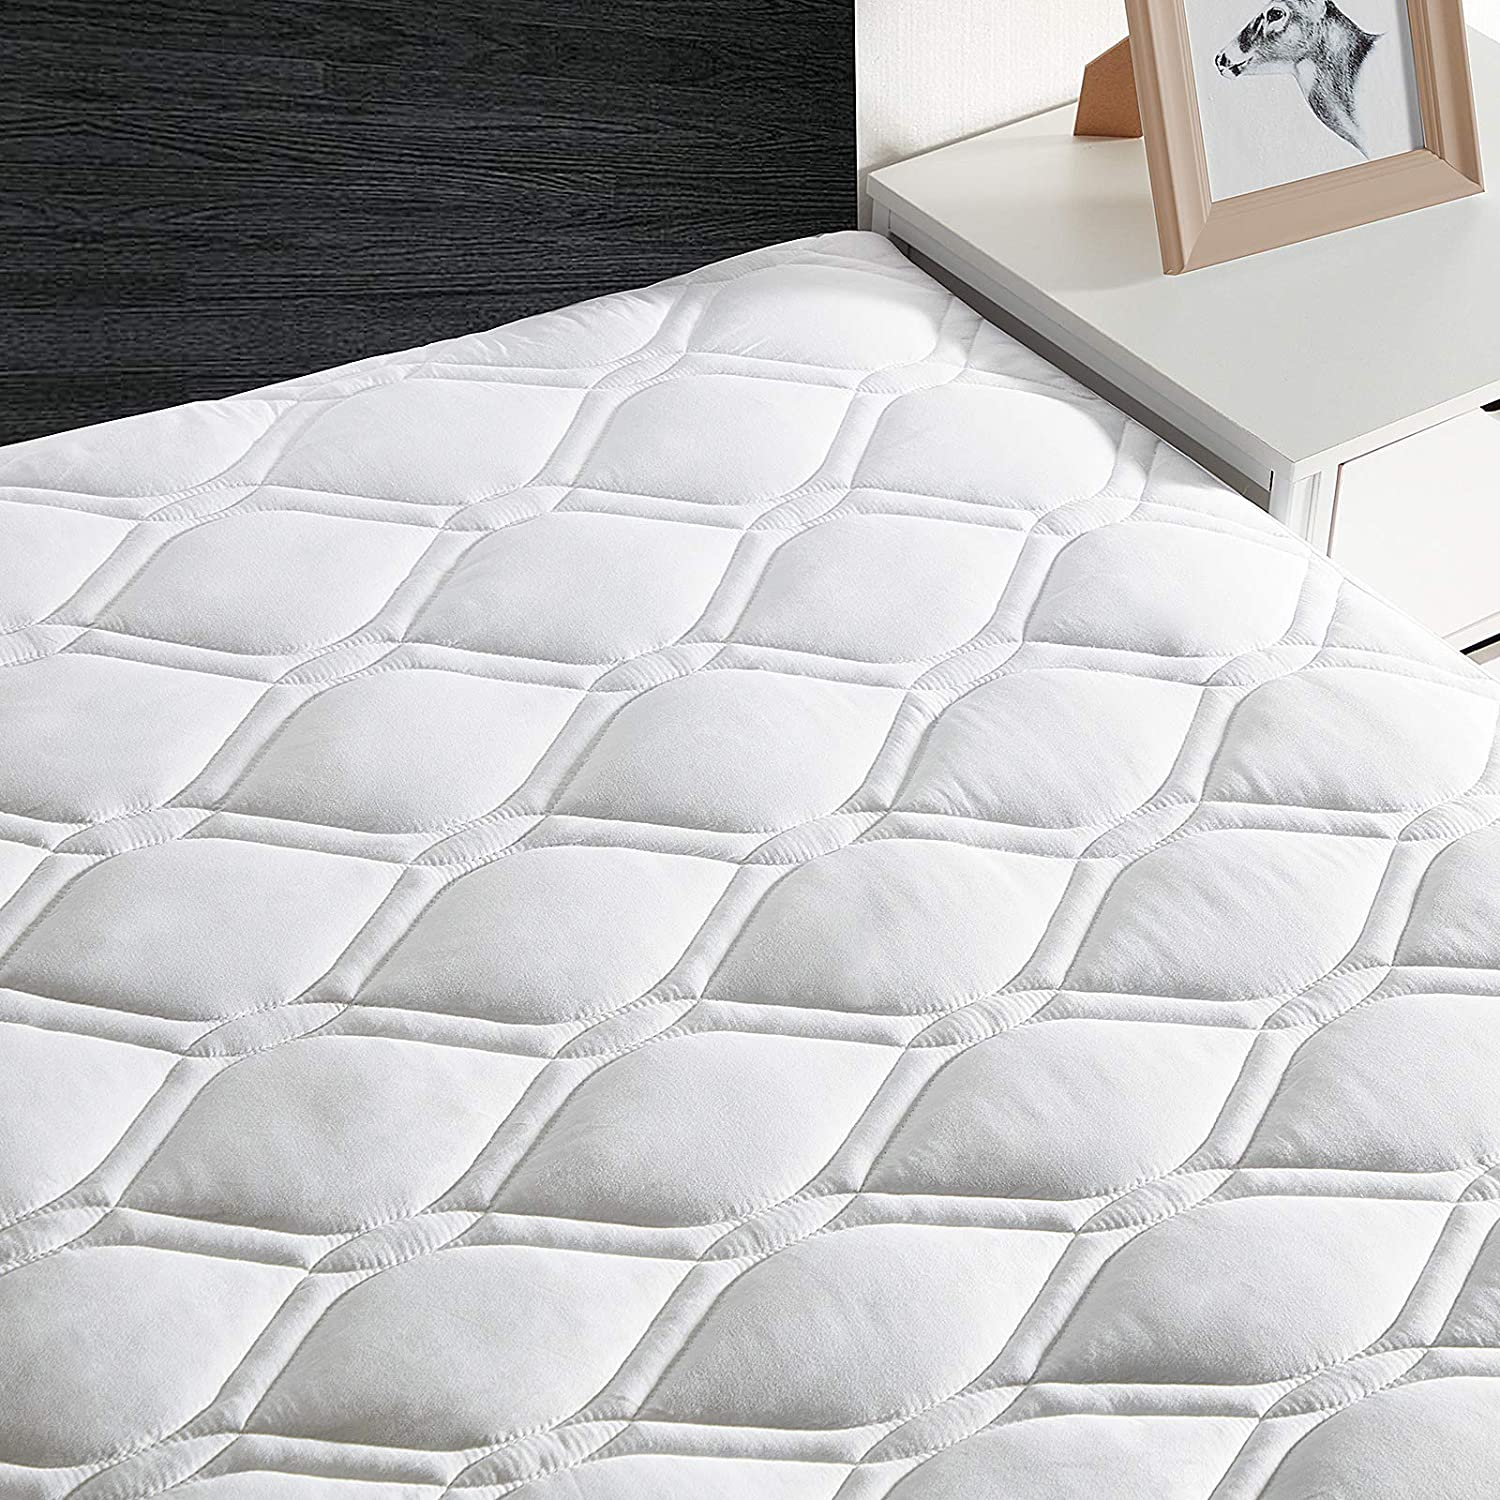 Queen Mattress Pad,Quilted Cooling Mattress Cover Stretches up to 21 Inches Deep,Soft,Breathable Mattress Protector